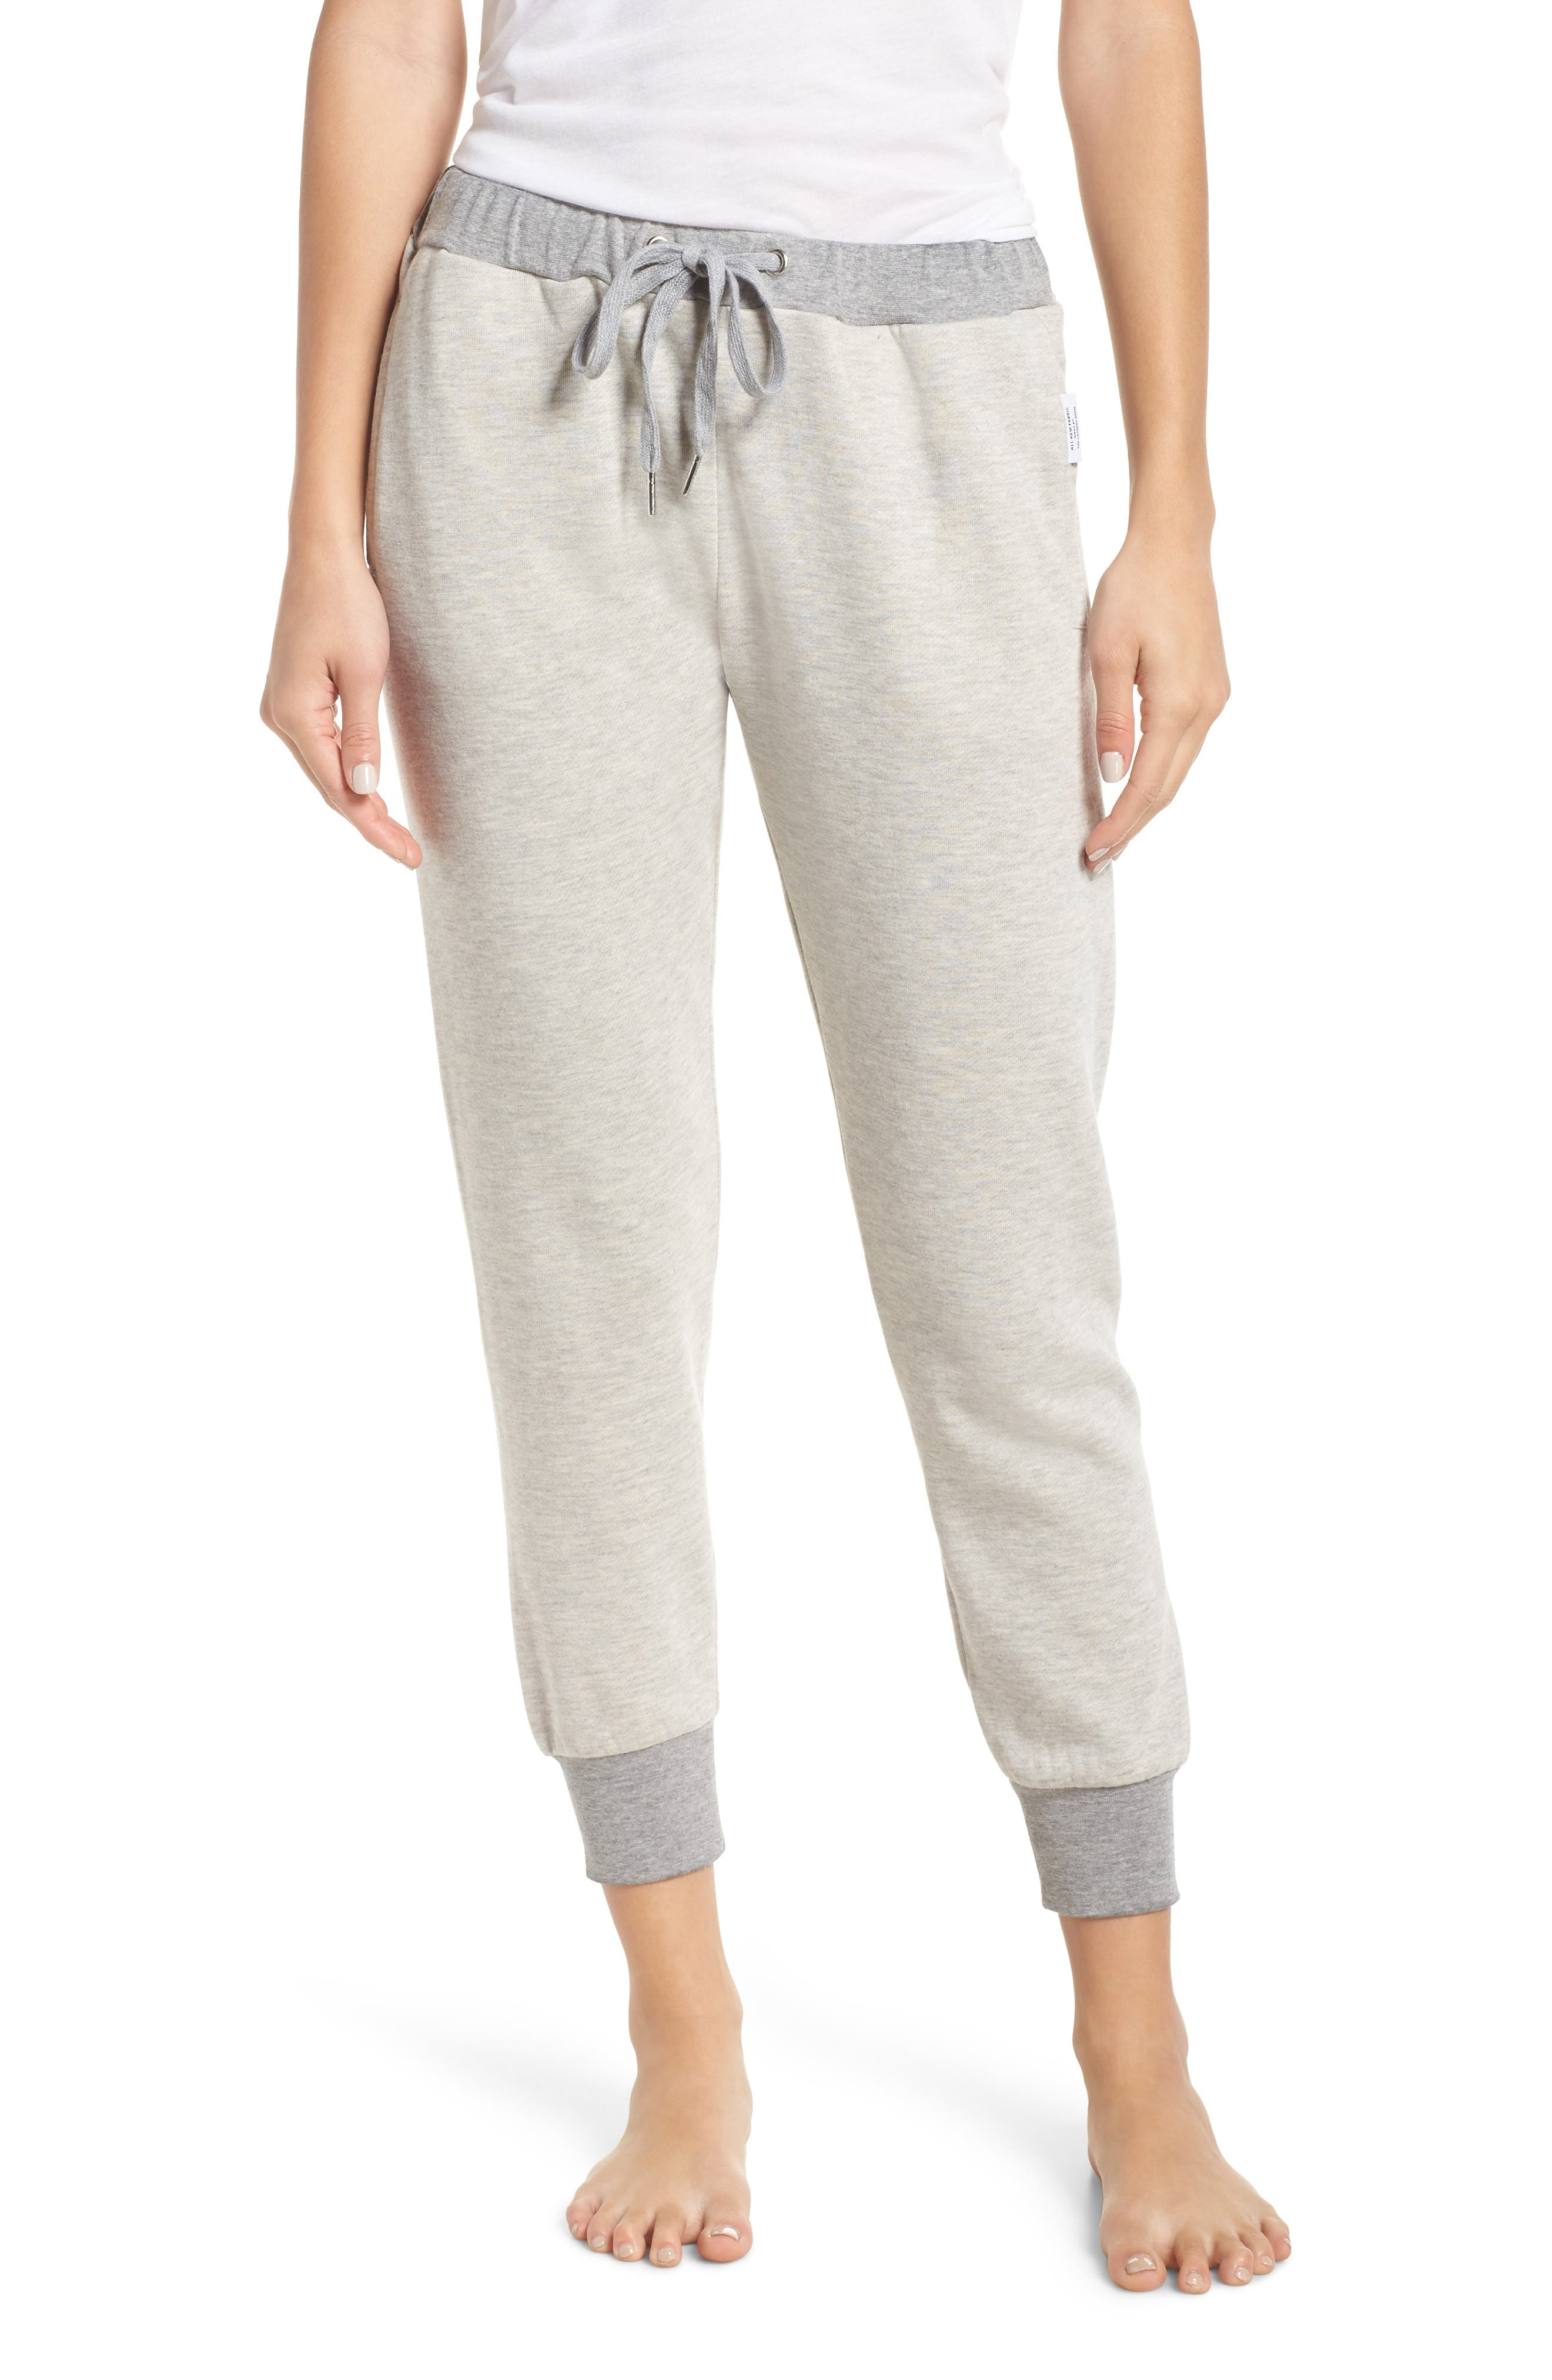 THE LAUNDRY ROOM Lounge Pants in Pebble Heather